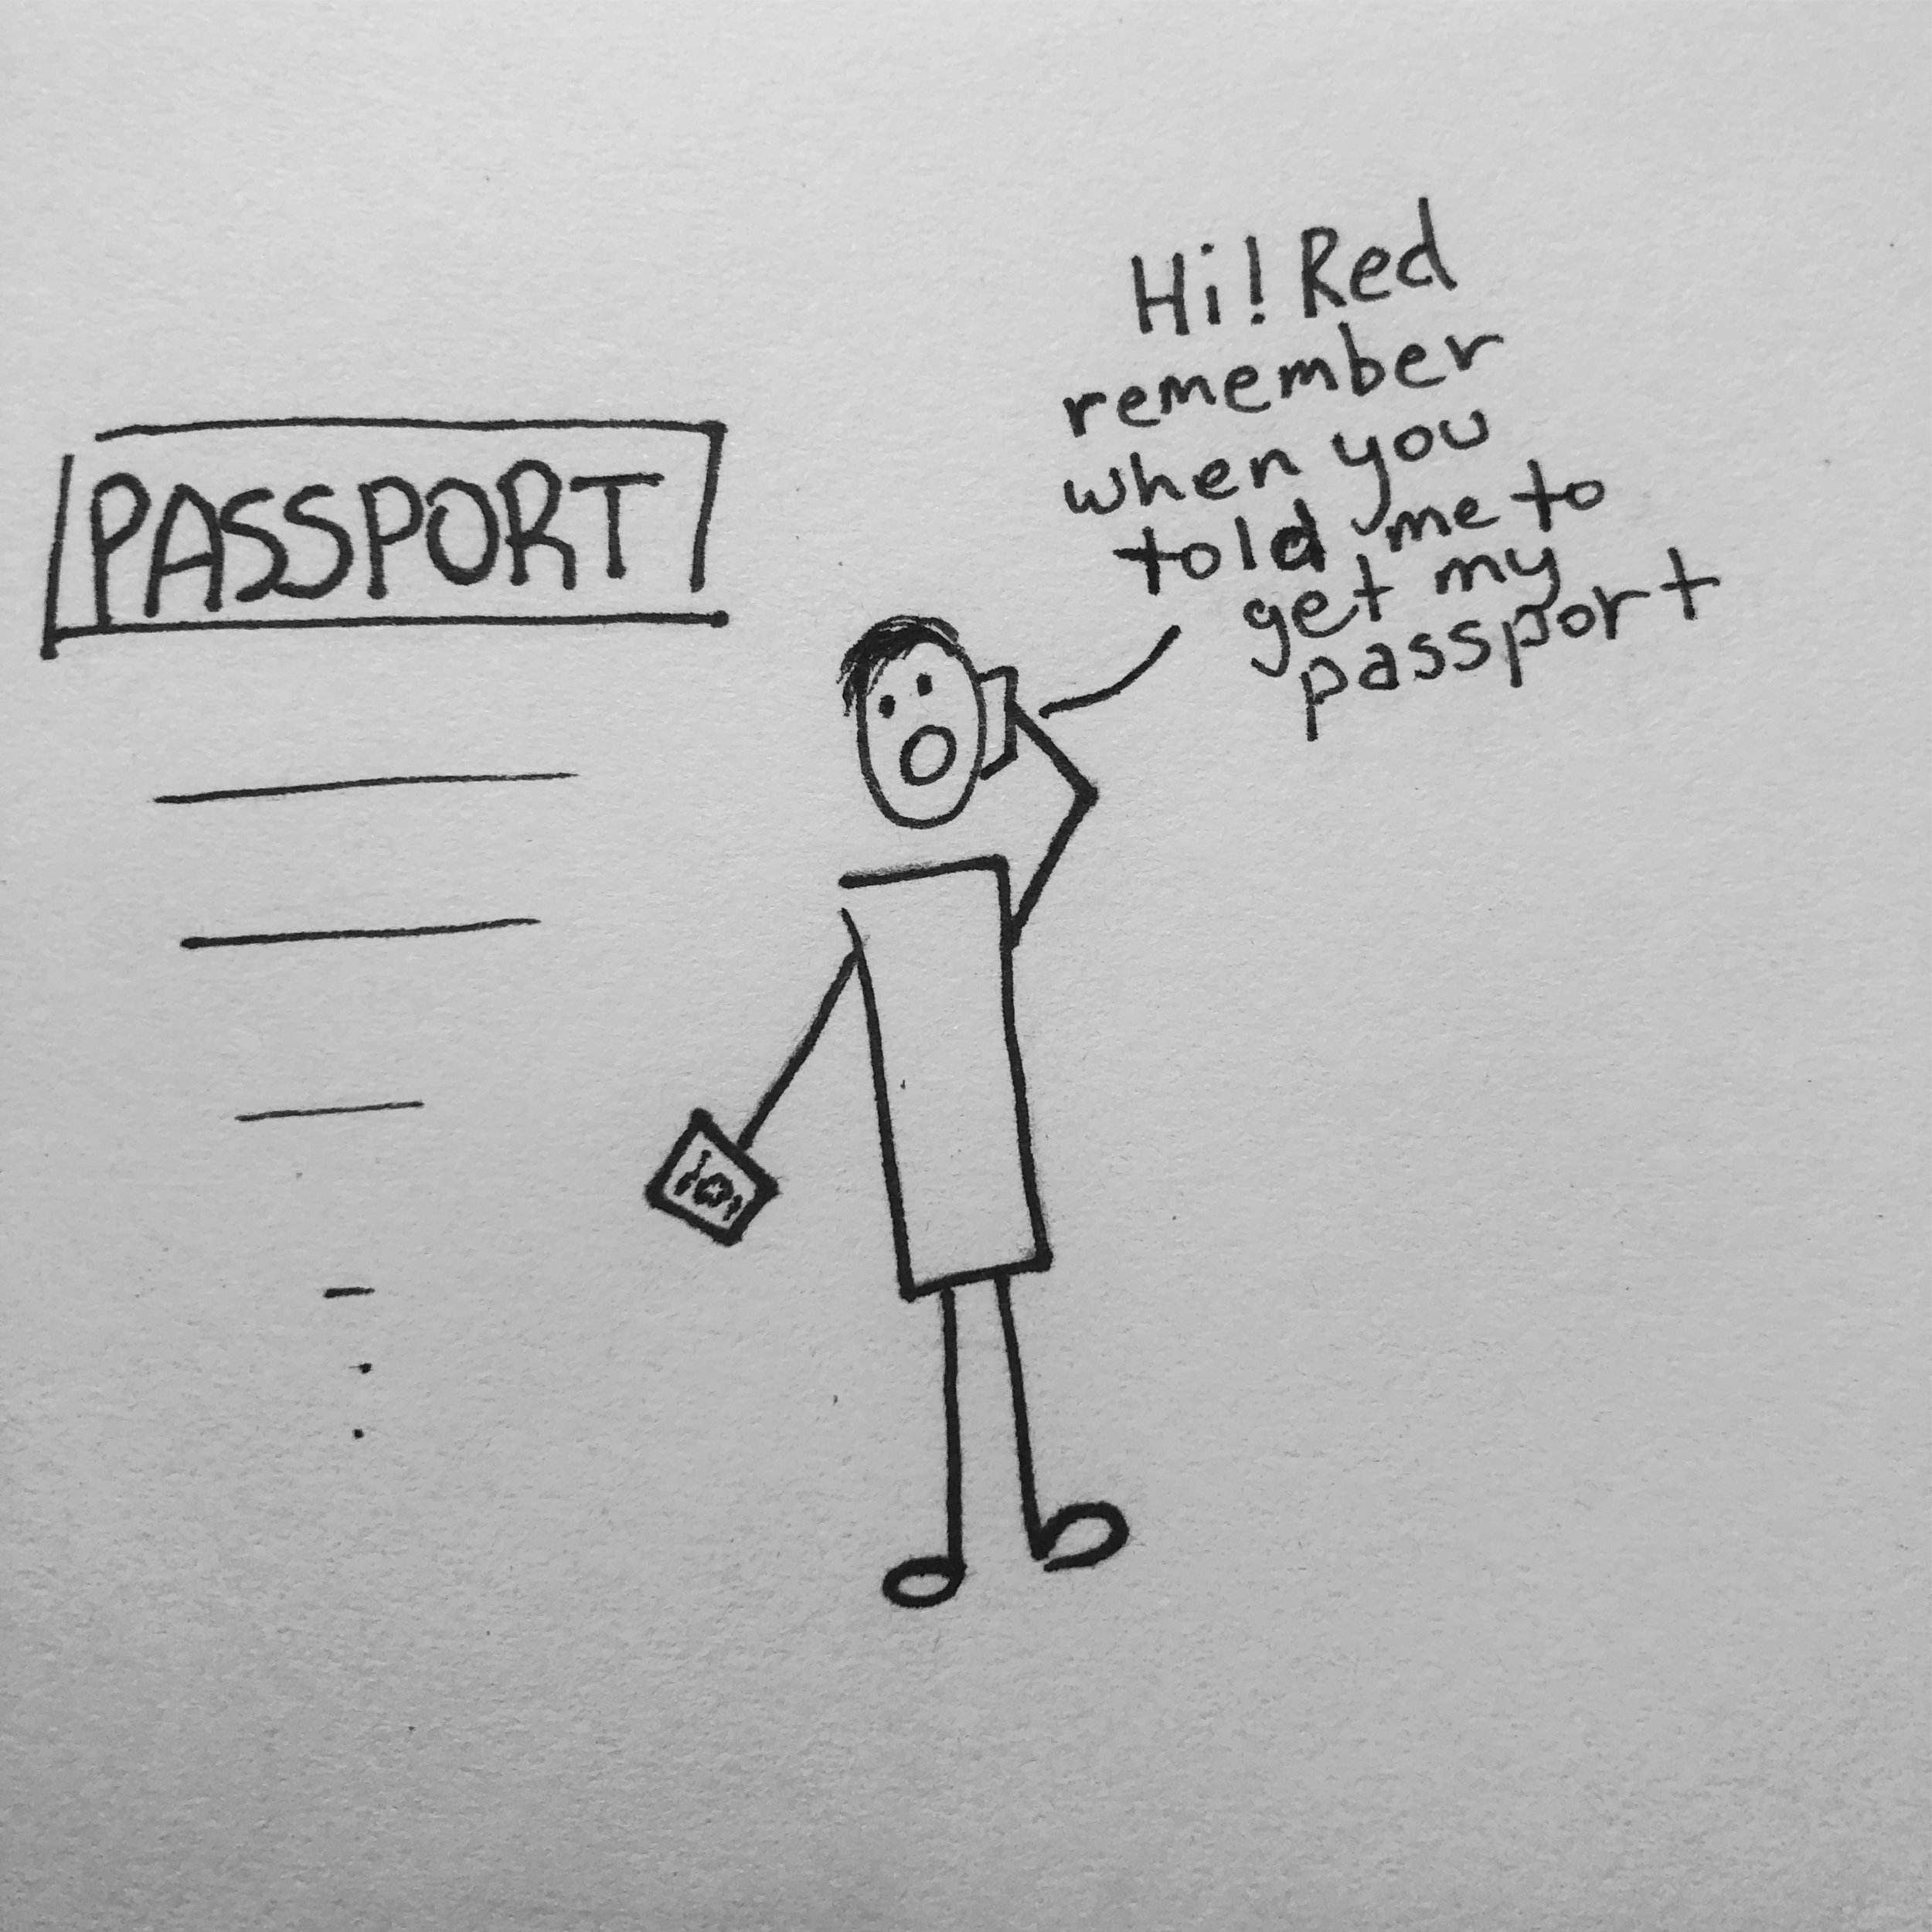 When he promised me that he'll get his passport and start traveling and he did. I know this action benefits him more than me, but I like a guy that says what he means and means what he says. -